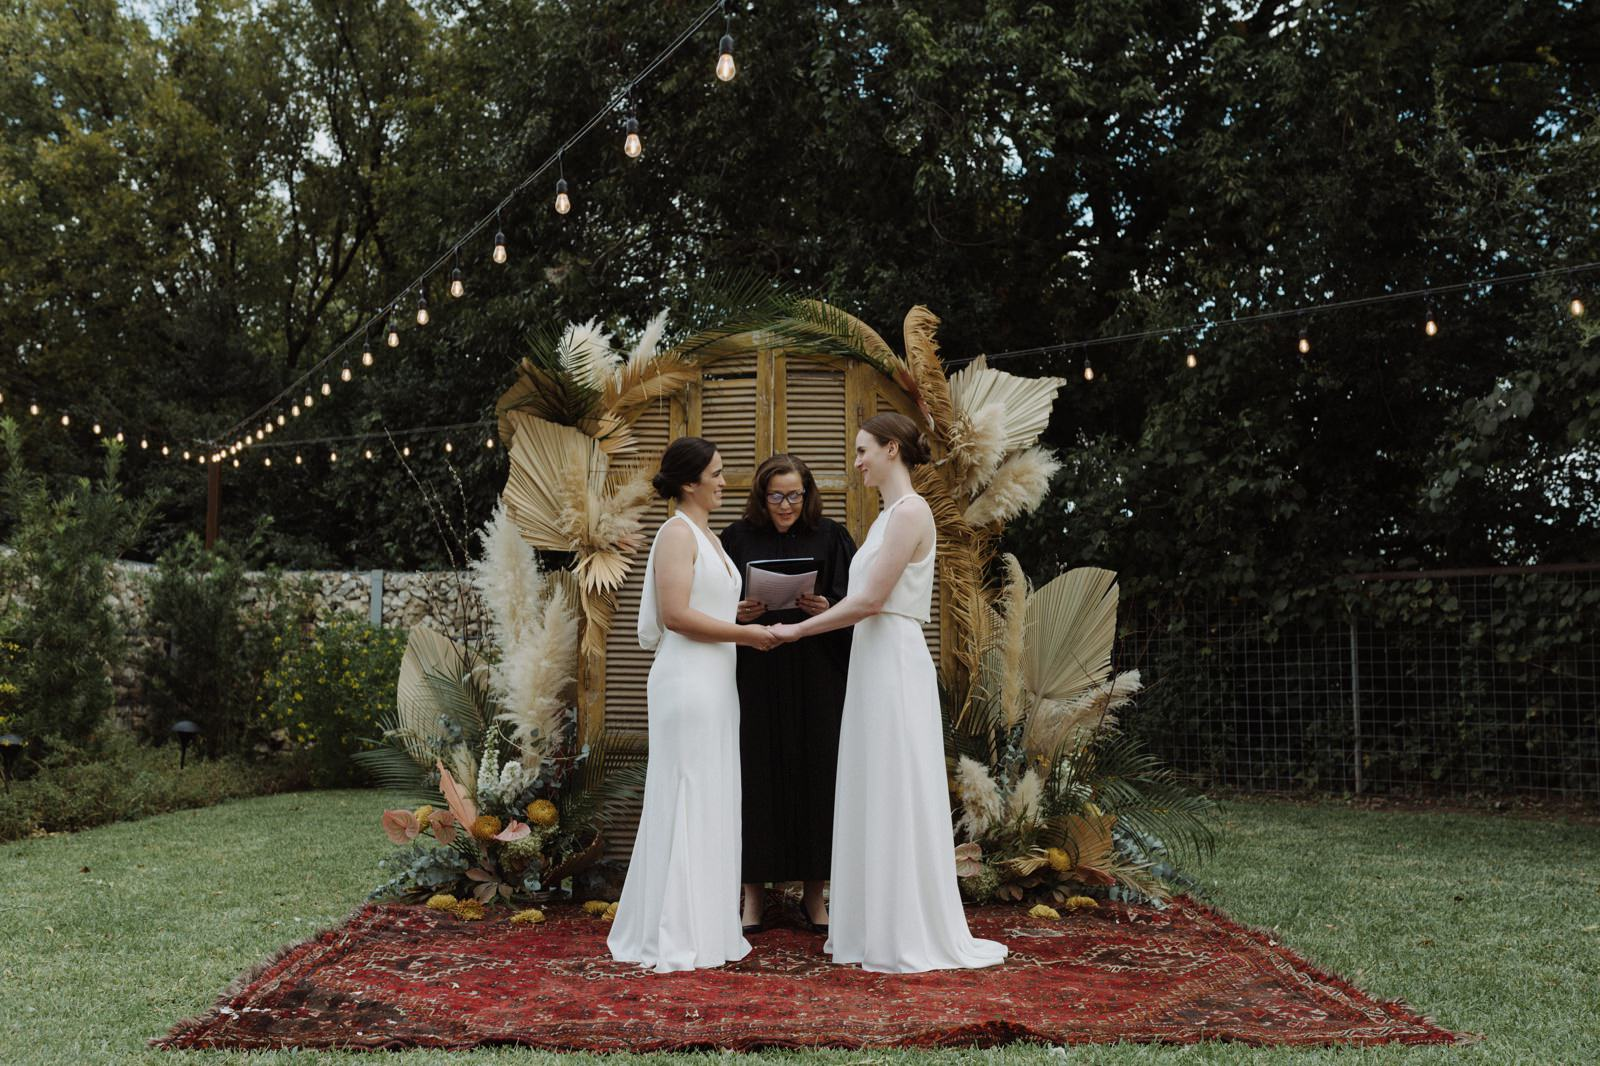 Outdoor courtyard ceremony with boho inspired decor by Rosehip Flora in Austin